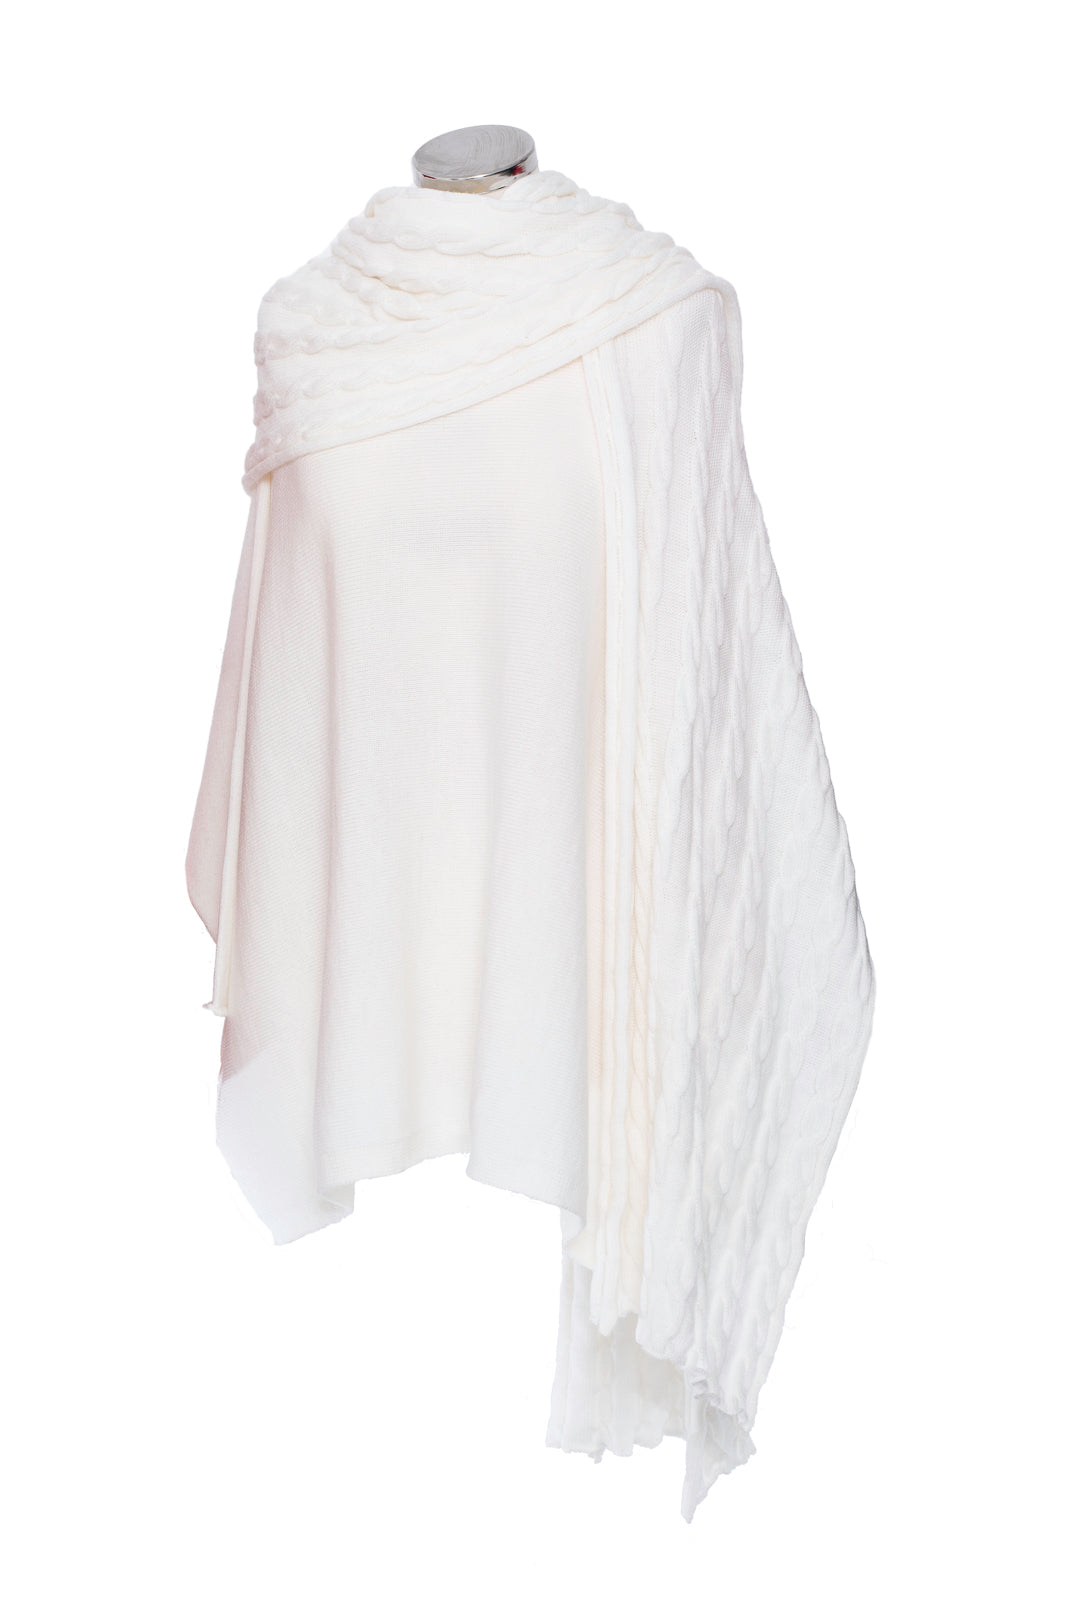 Winter White Cable Knit Scarf